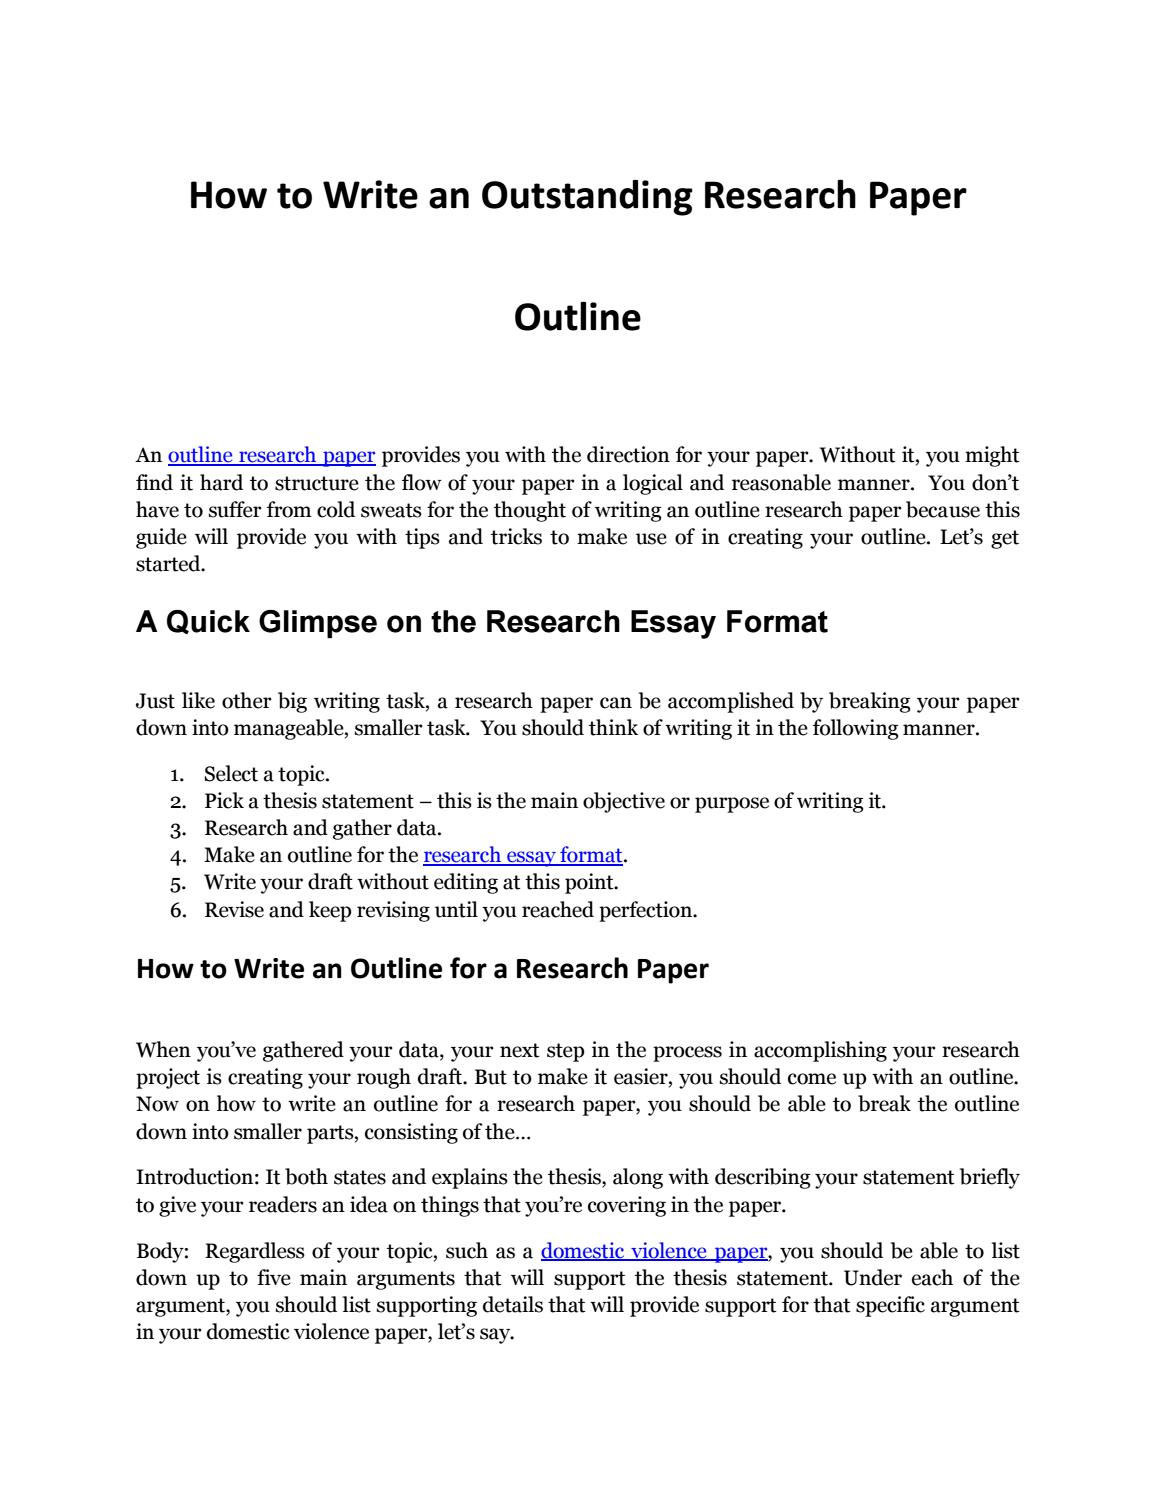 007 How To Make An Outline For Research Paper Page 1 Stirring A Examples Scientific Mla Full